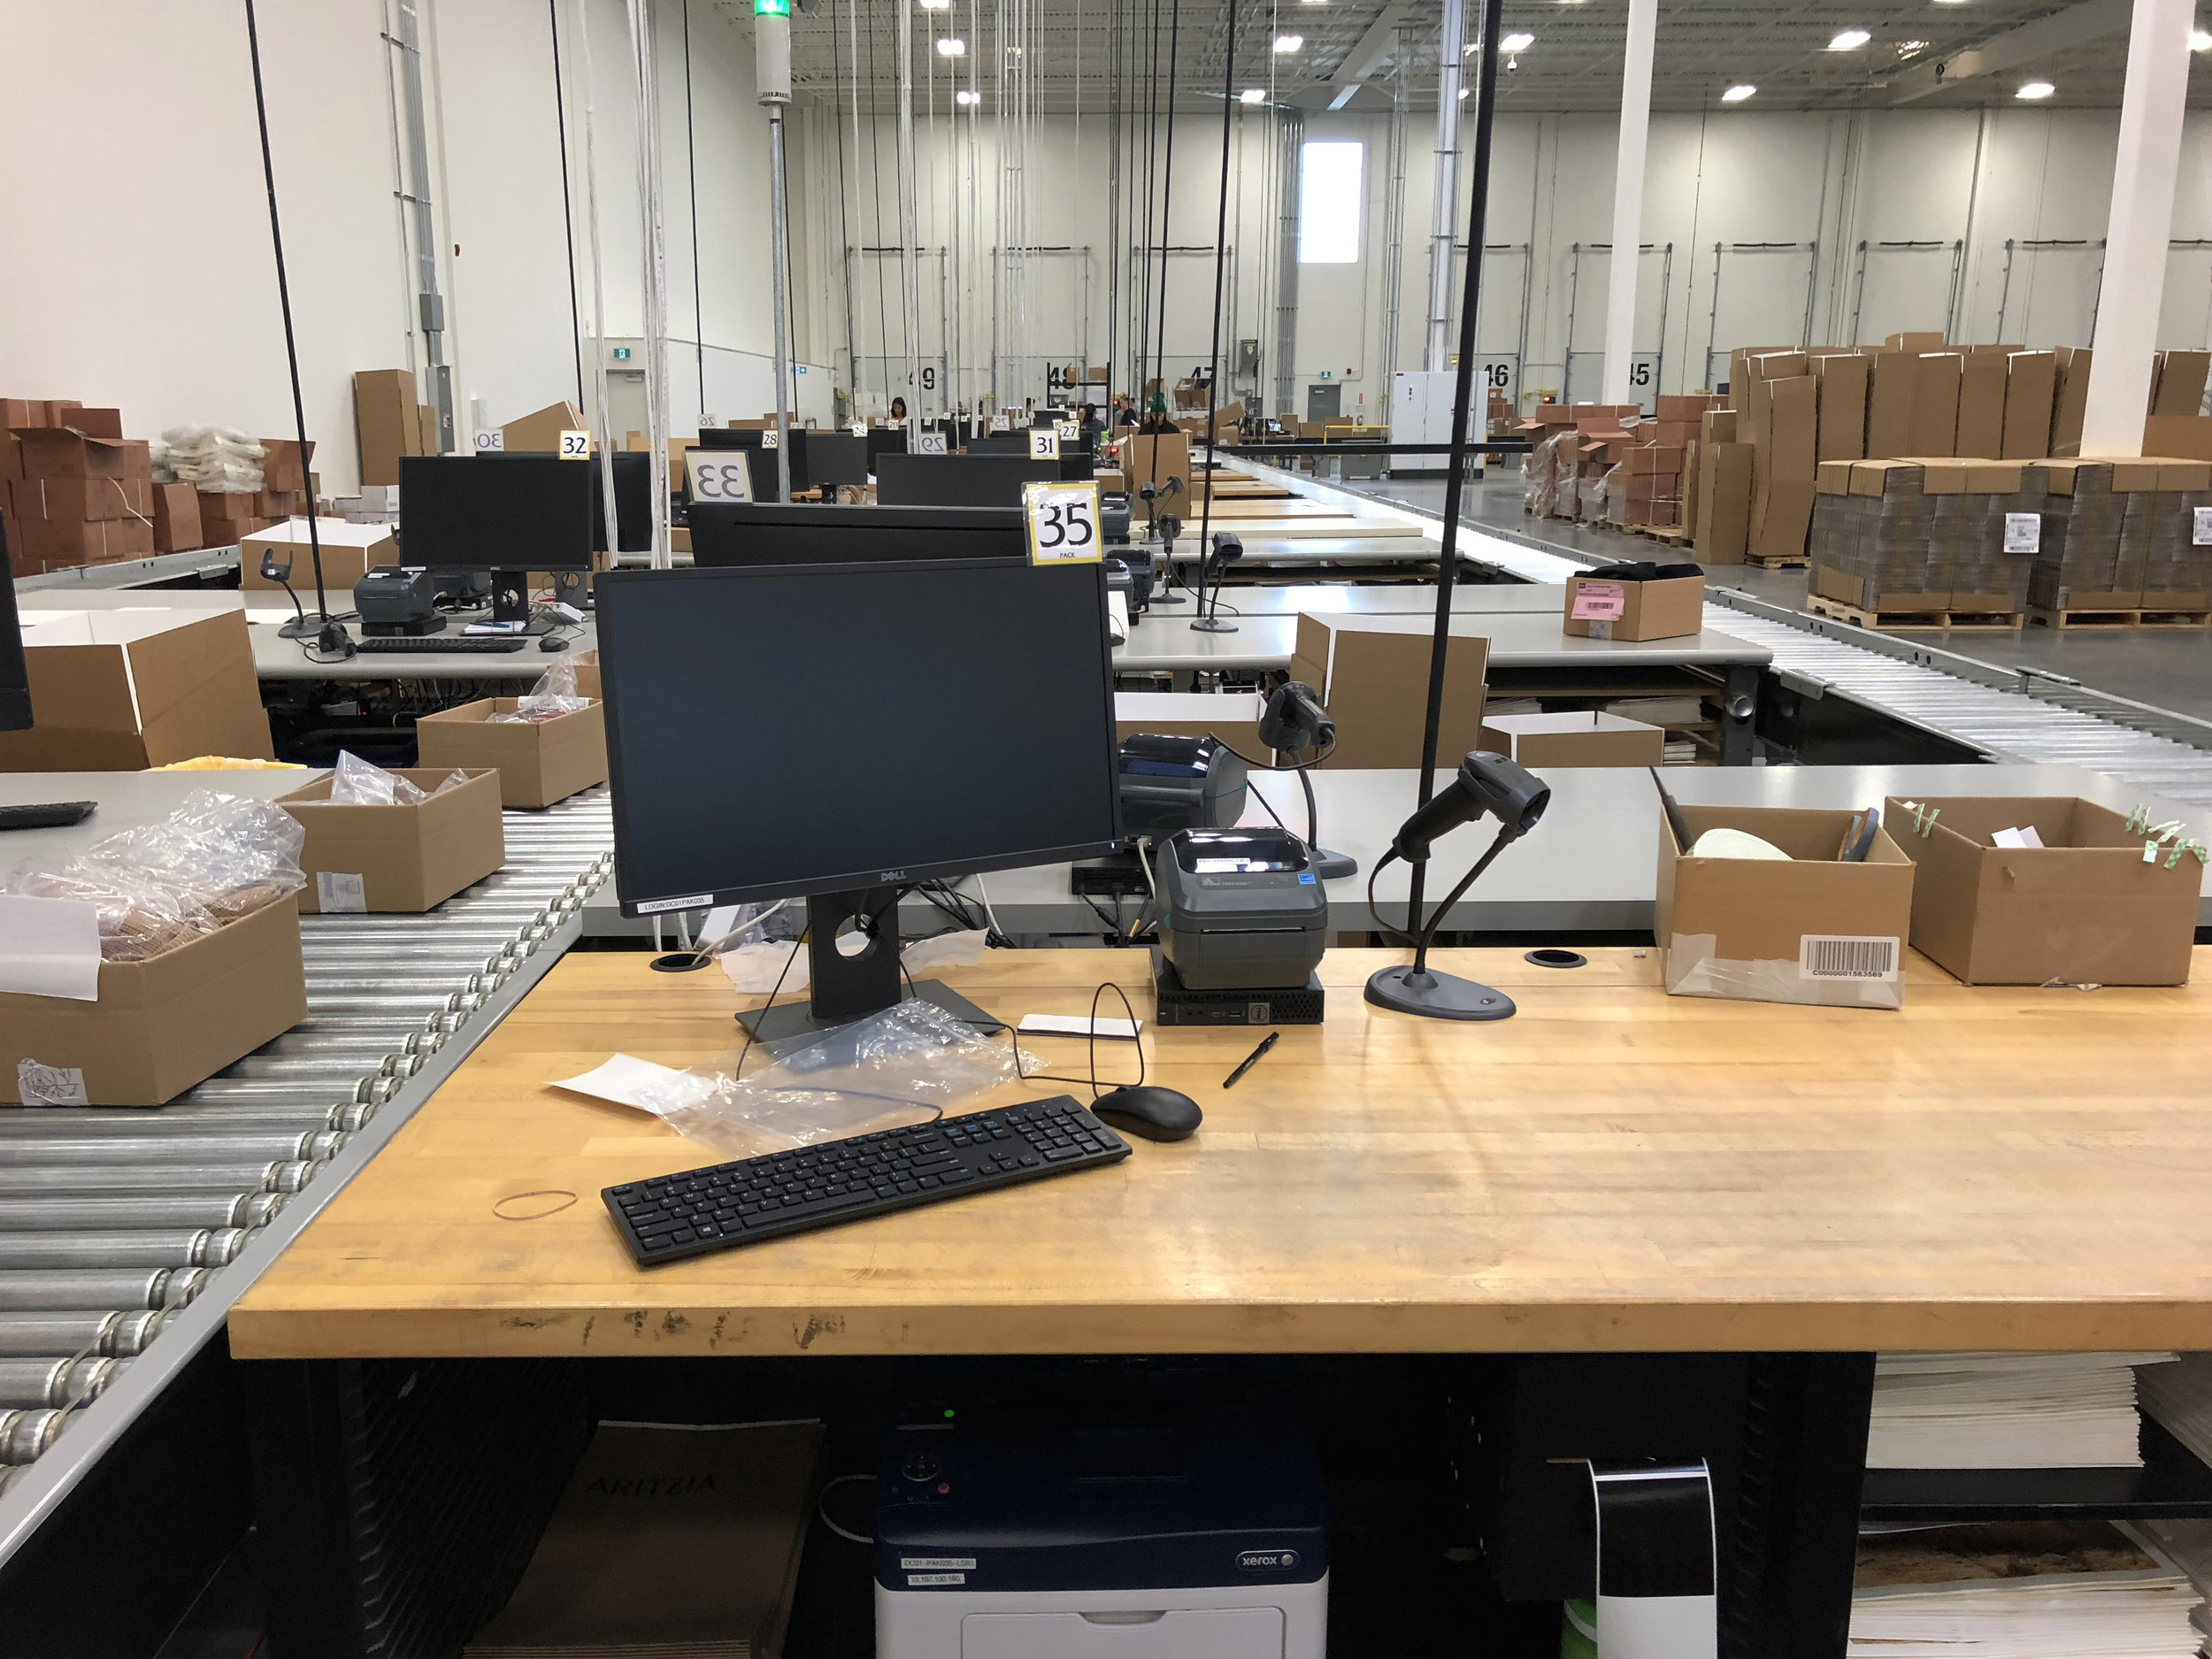 Packing stations where products are pulled from a conveyor, packed up and readied for shipping.